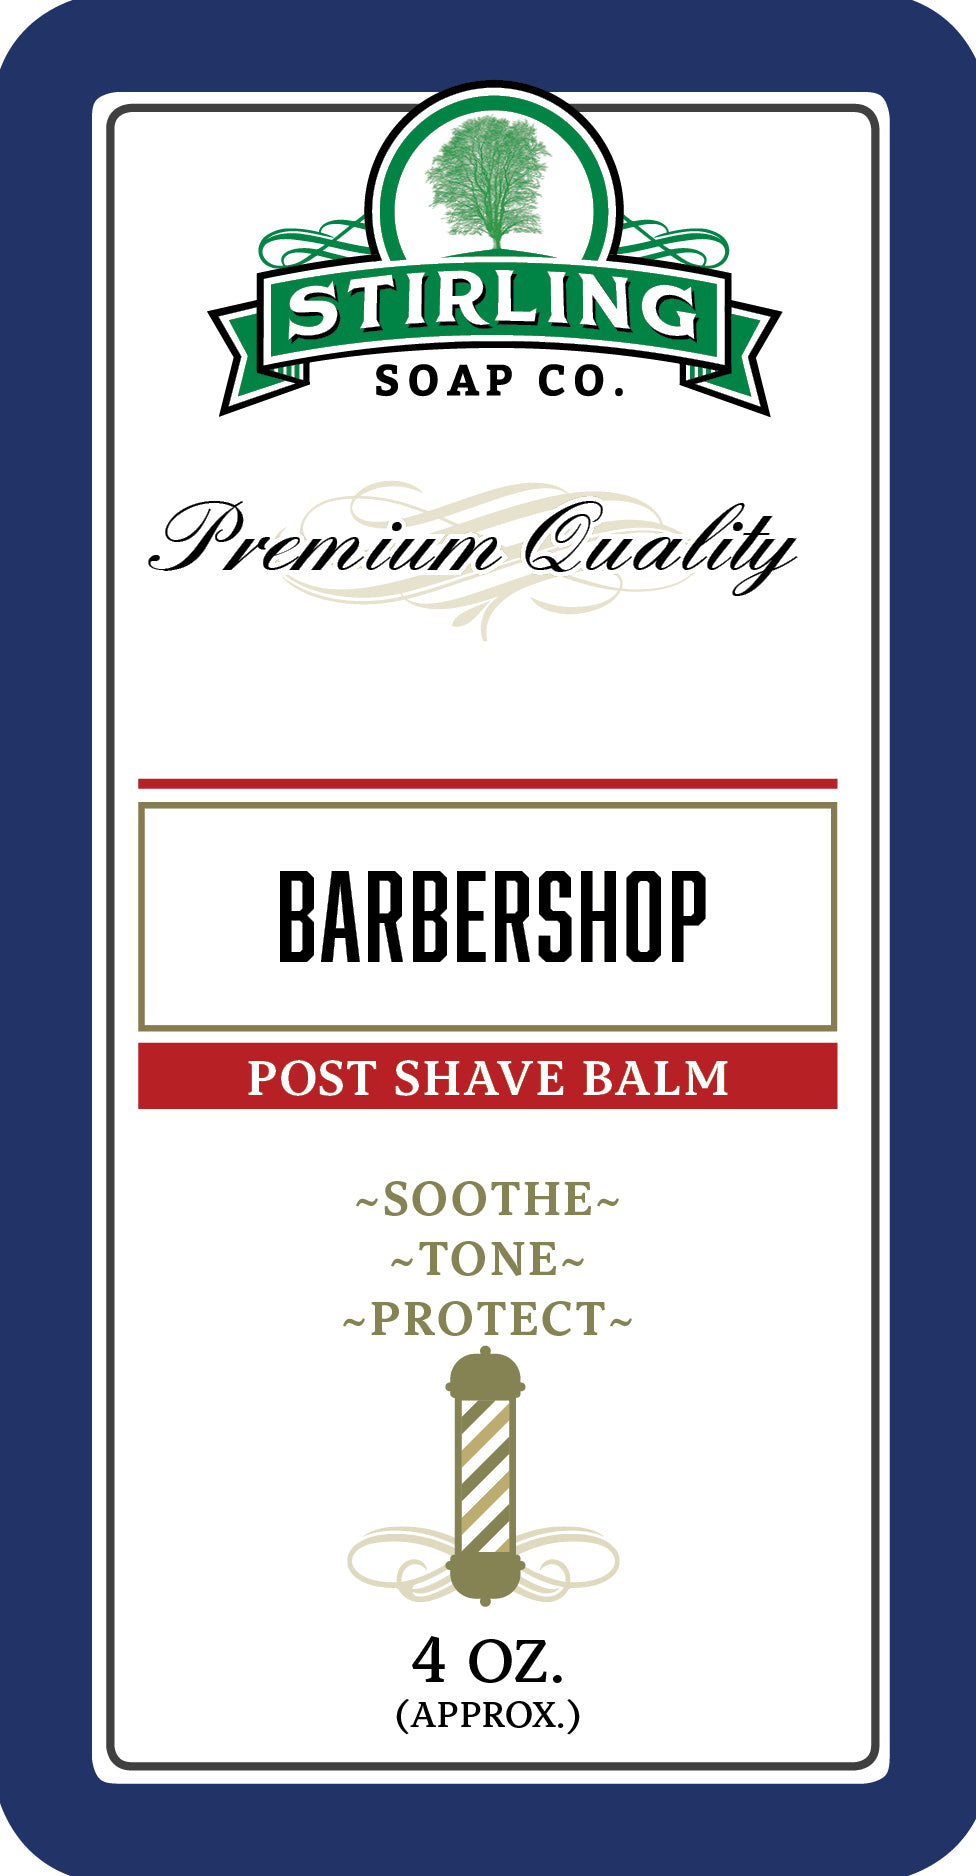 Barbershop - Post-Shave Balm